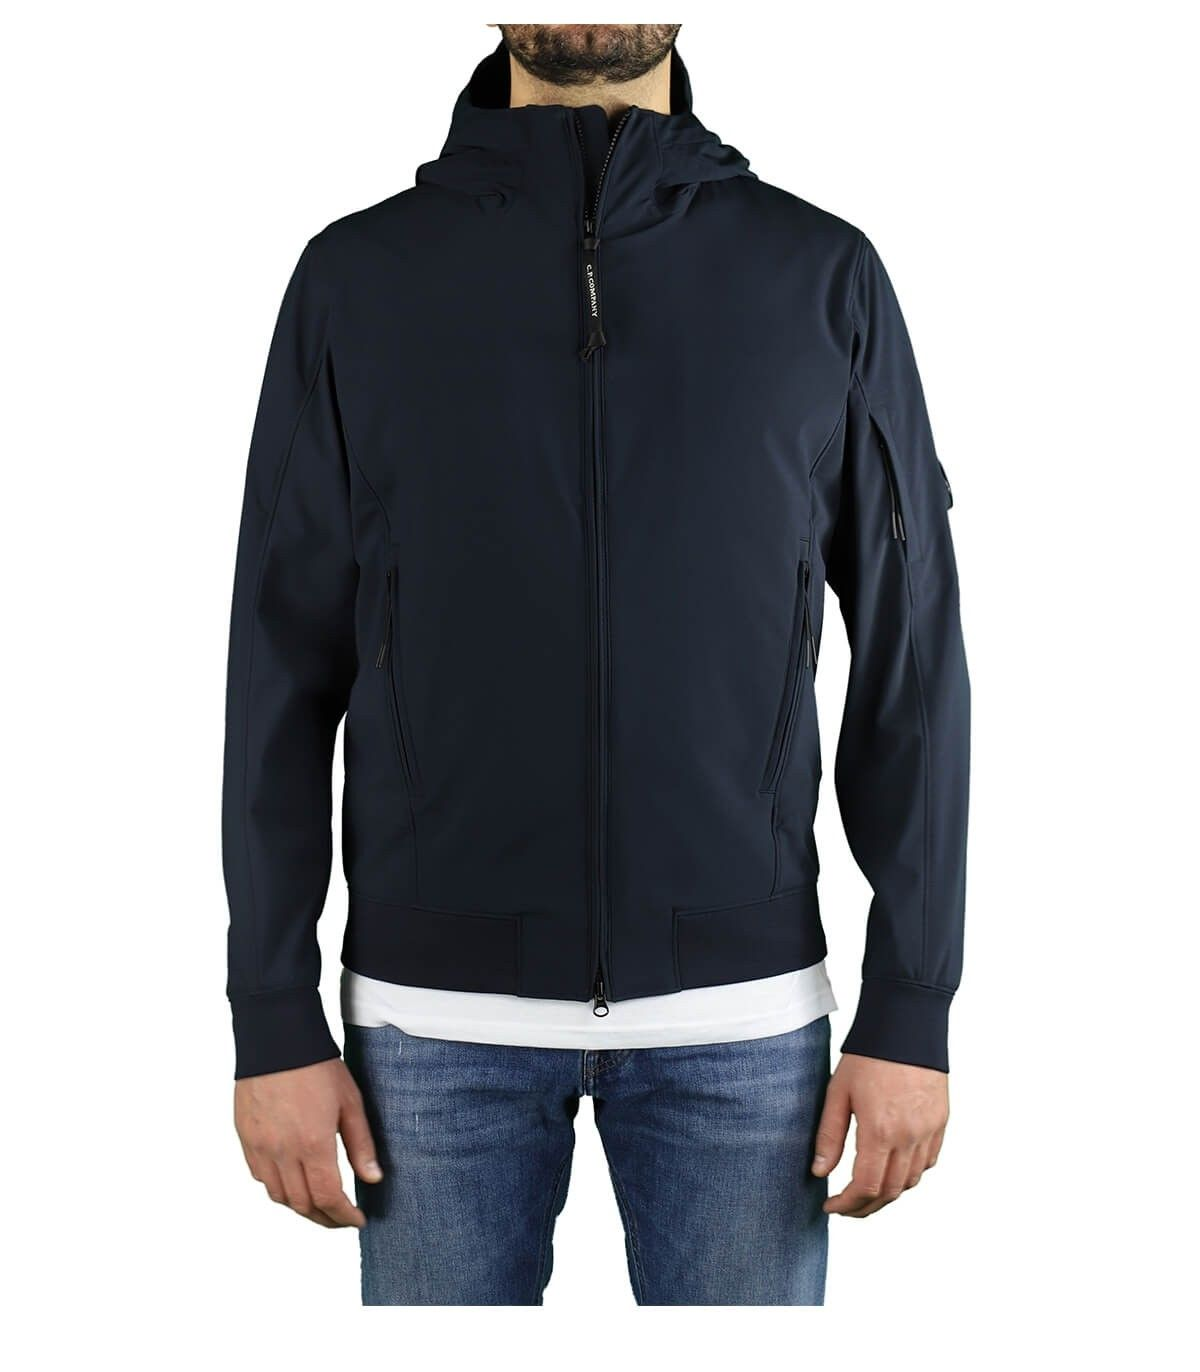 C.p. Company CP COMPANY MEN'S BLUE POLYAMIDE OUTERWEAR JACKET